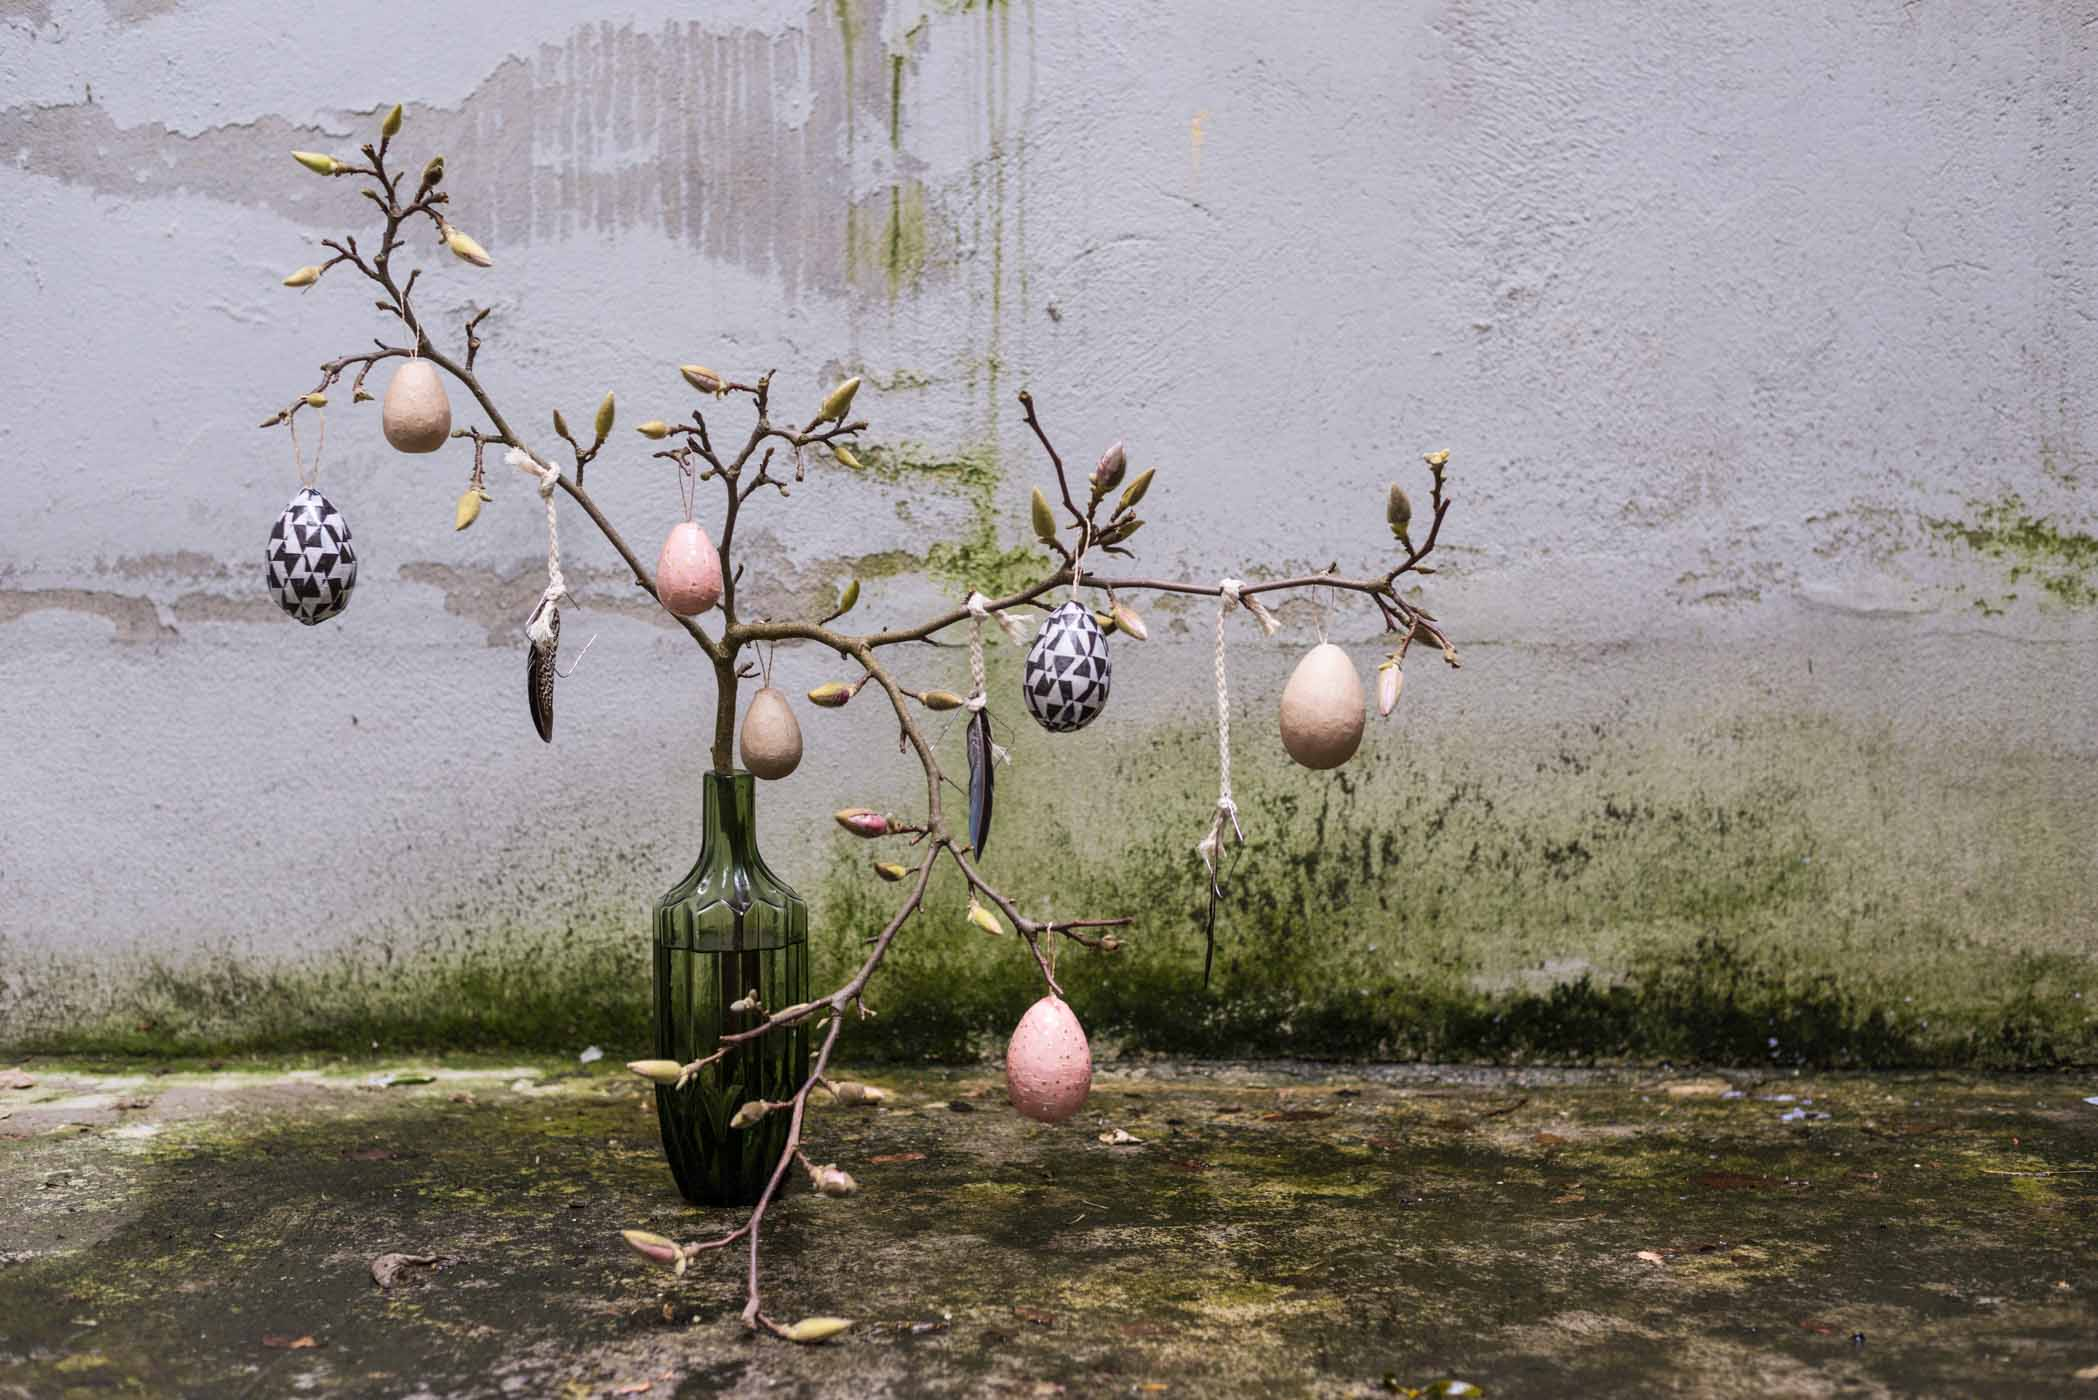 Einfache Osterdeko, Ostern, Easter, DIY, Bastelideen, Idee, Anhänger, do it yourself, Ast, Schmuck, Feder, freemindedfolks, selbstgemacht, slow living, hygge